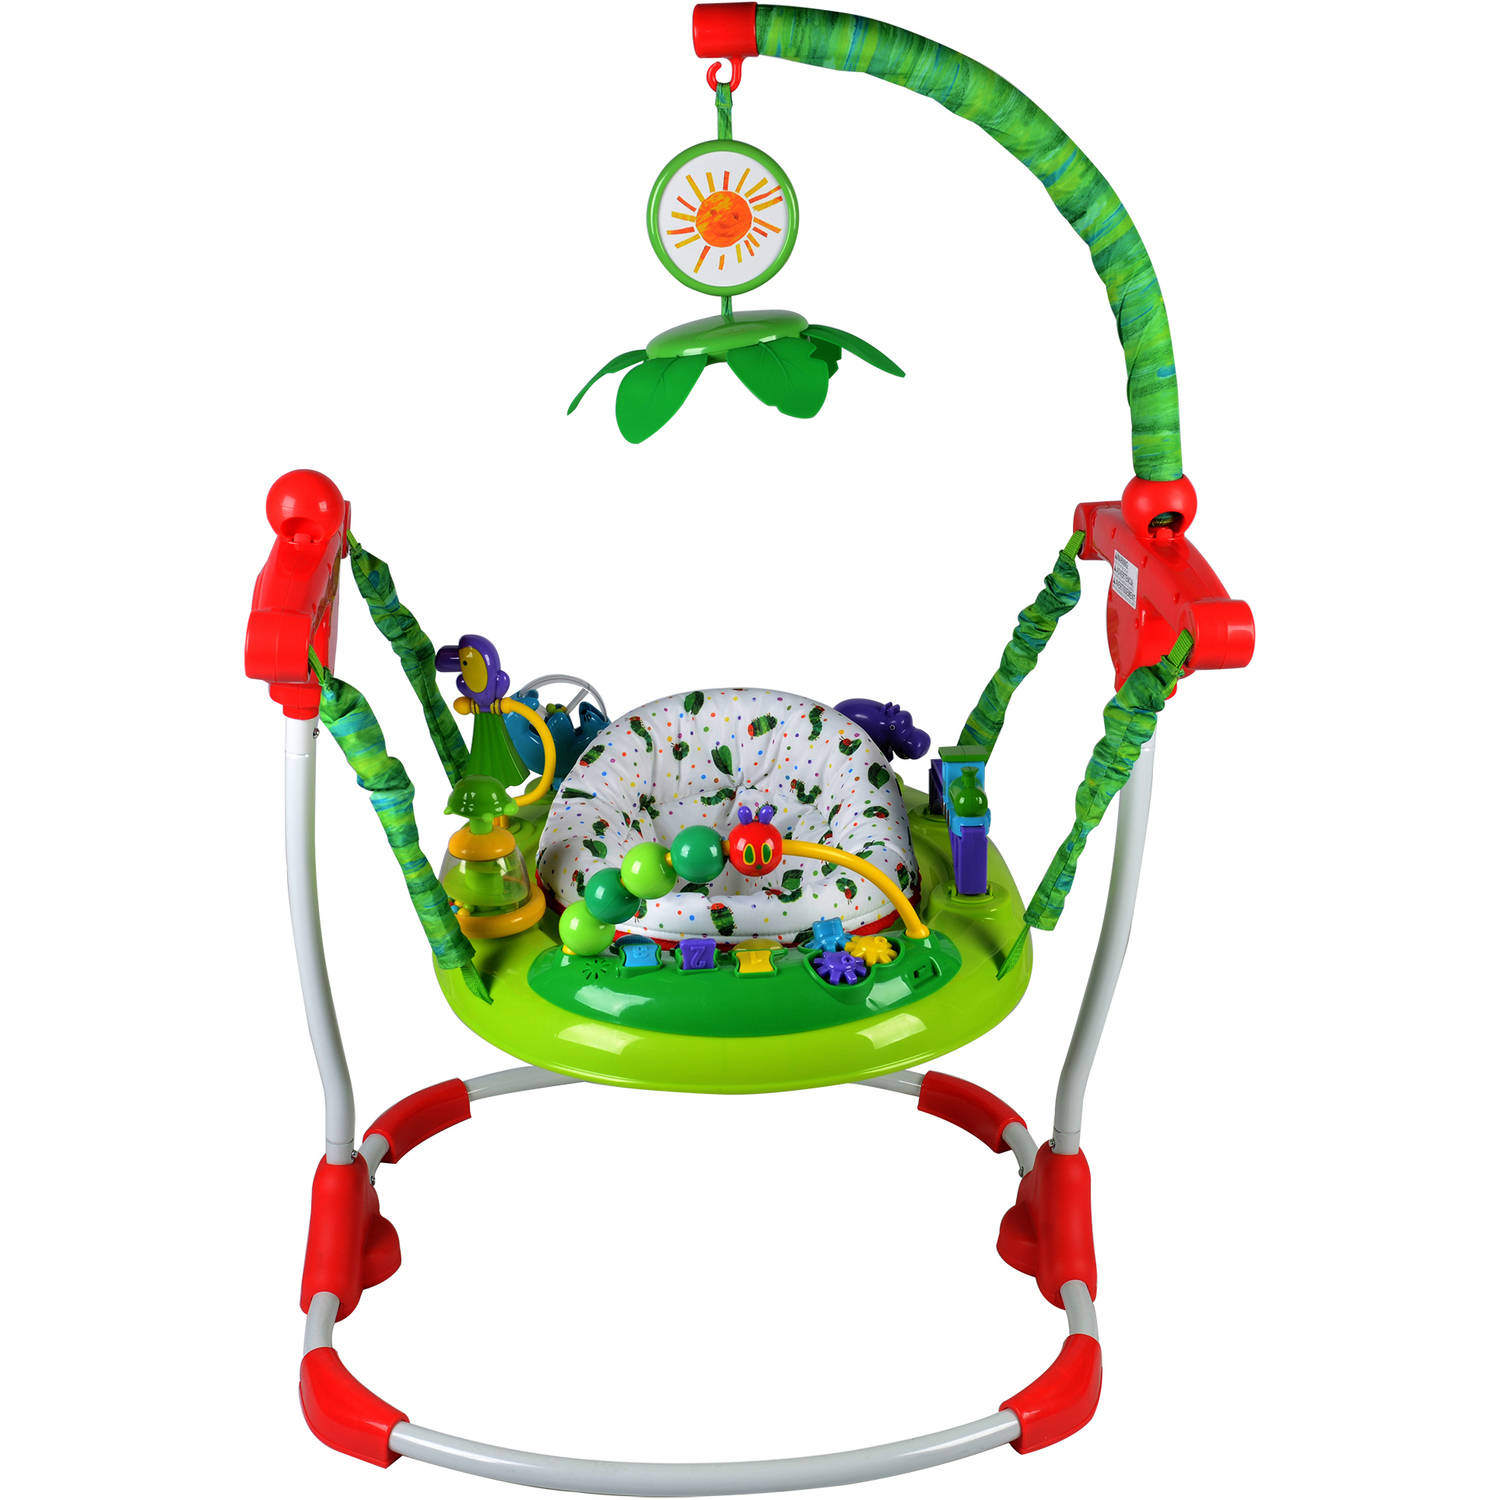 Creative Baby The Very Hungry Caterpillar Jumper